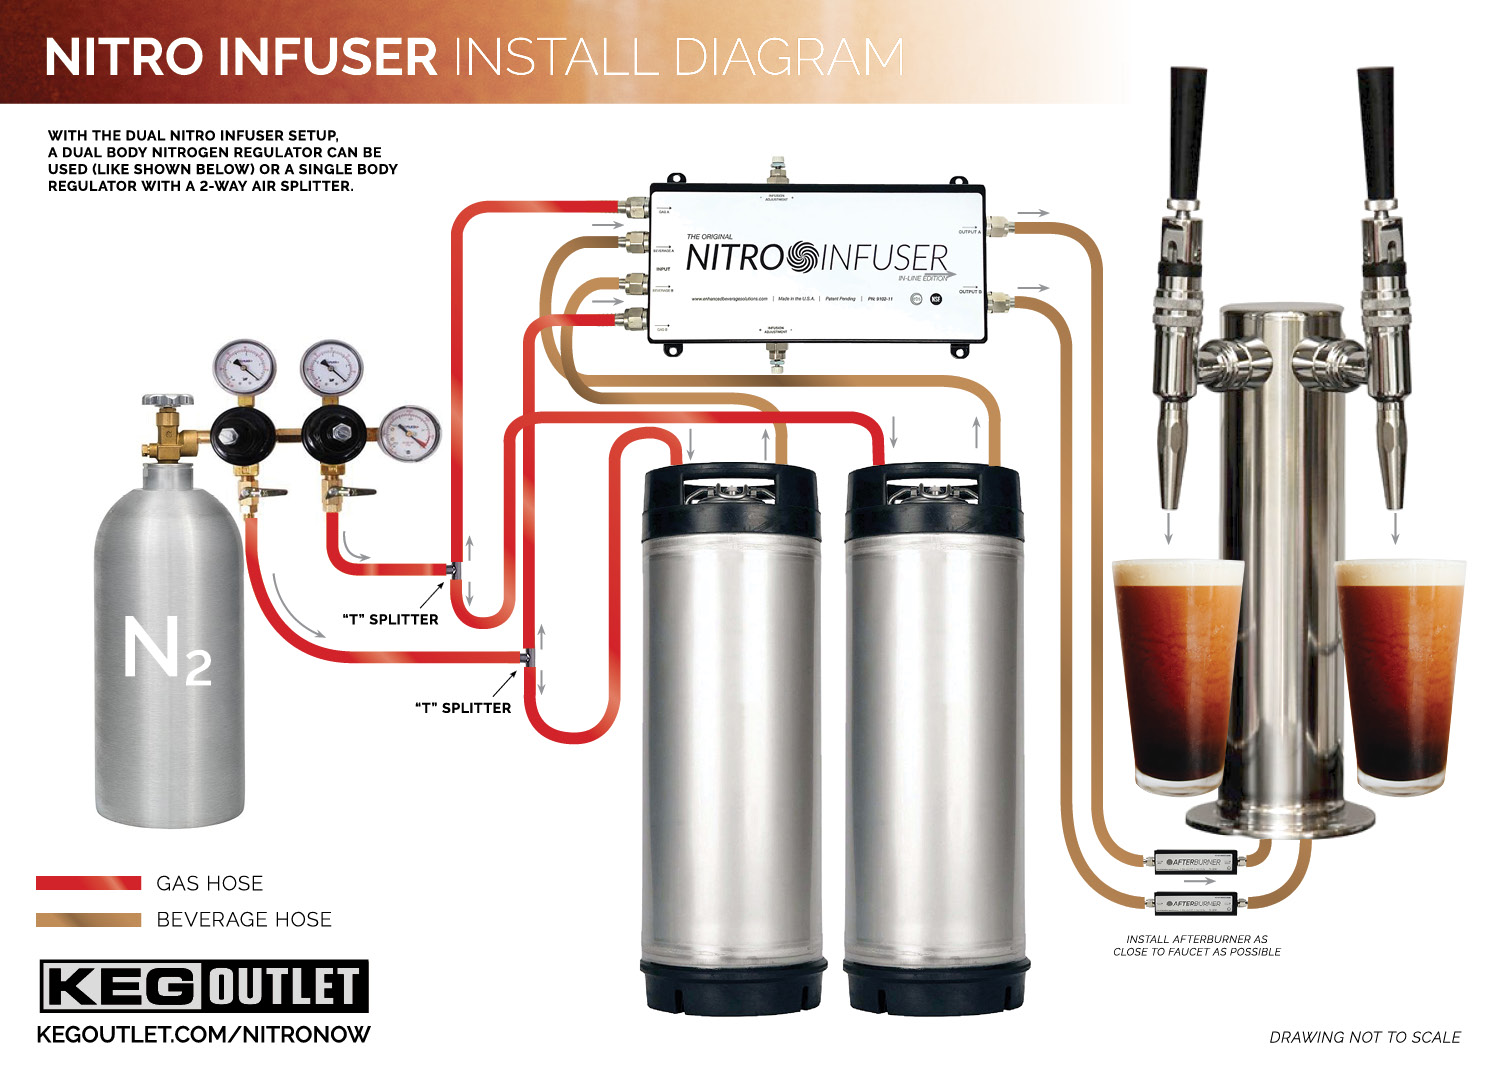 Dual Nitro Infuser with AfterBurners Installation Diagram